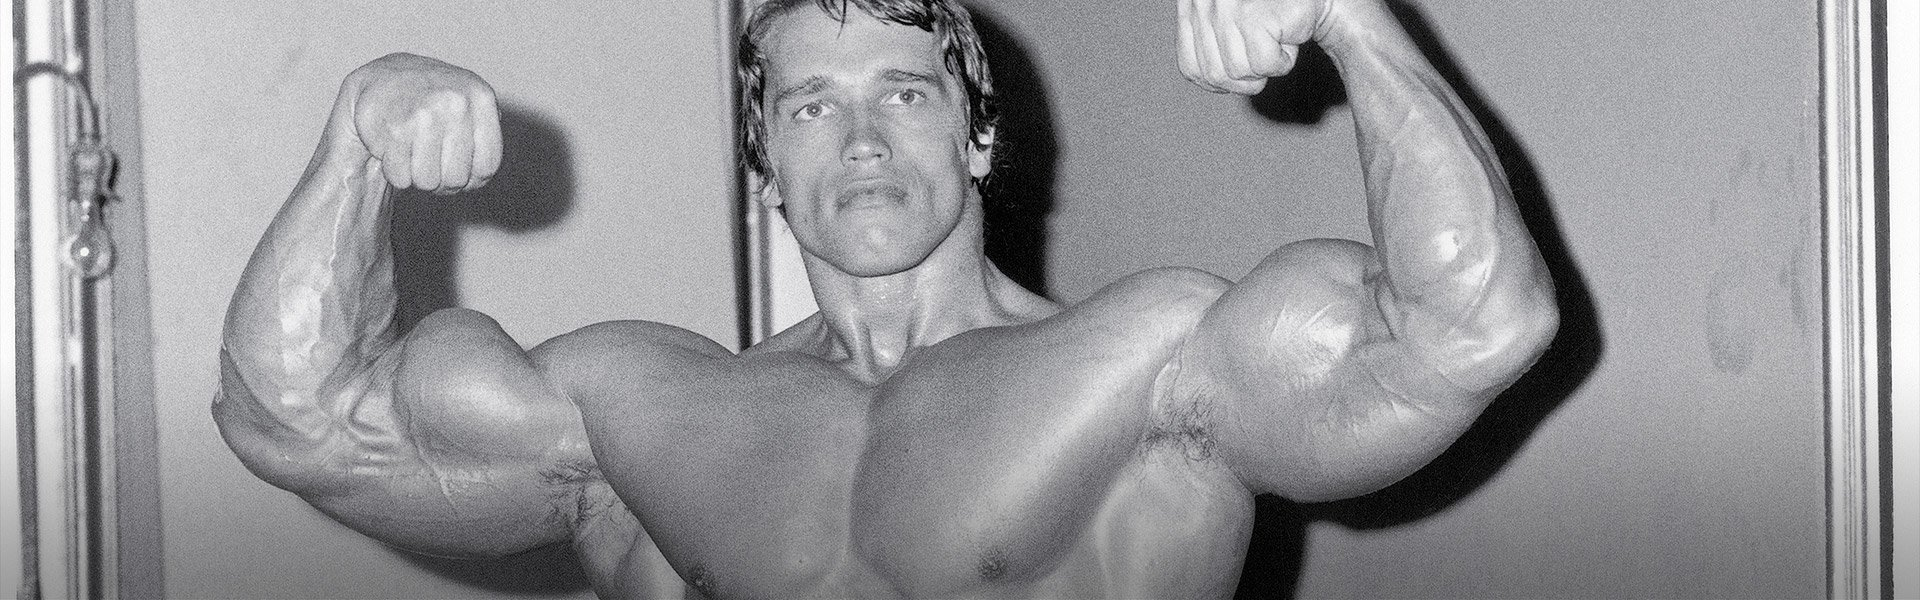 Arnold schwarzenegger blueprint trainer day 11 malvernweather Images